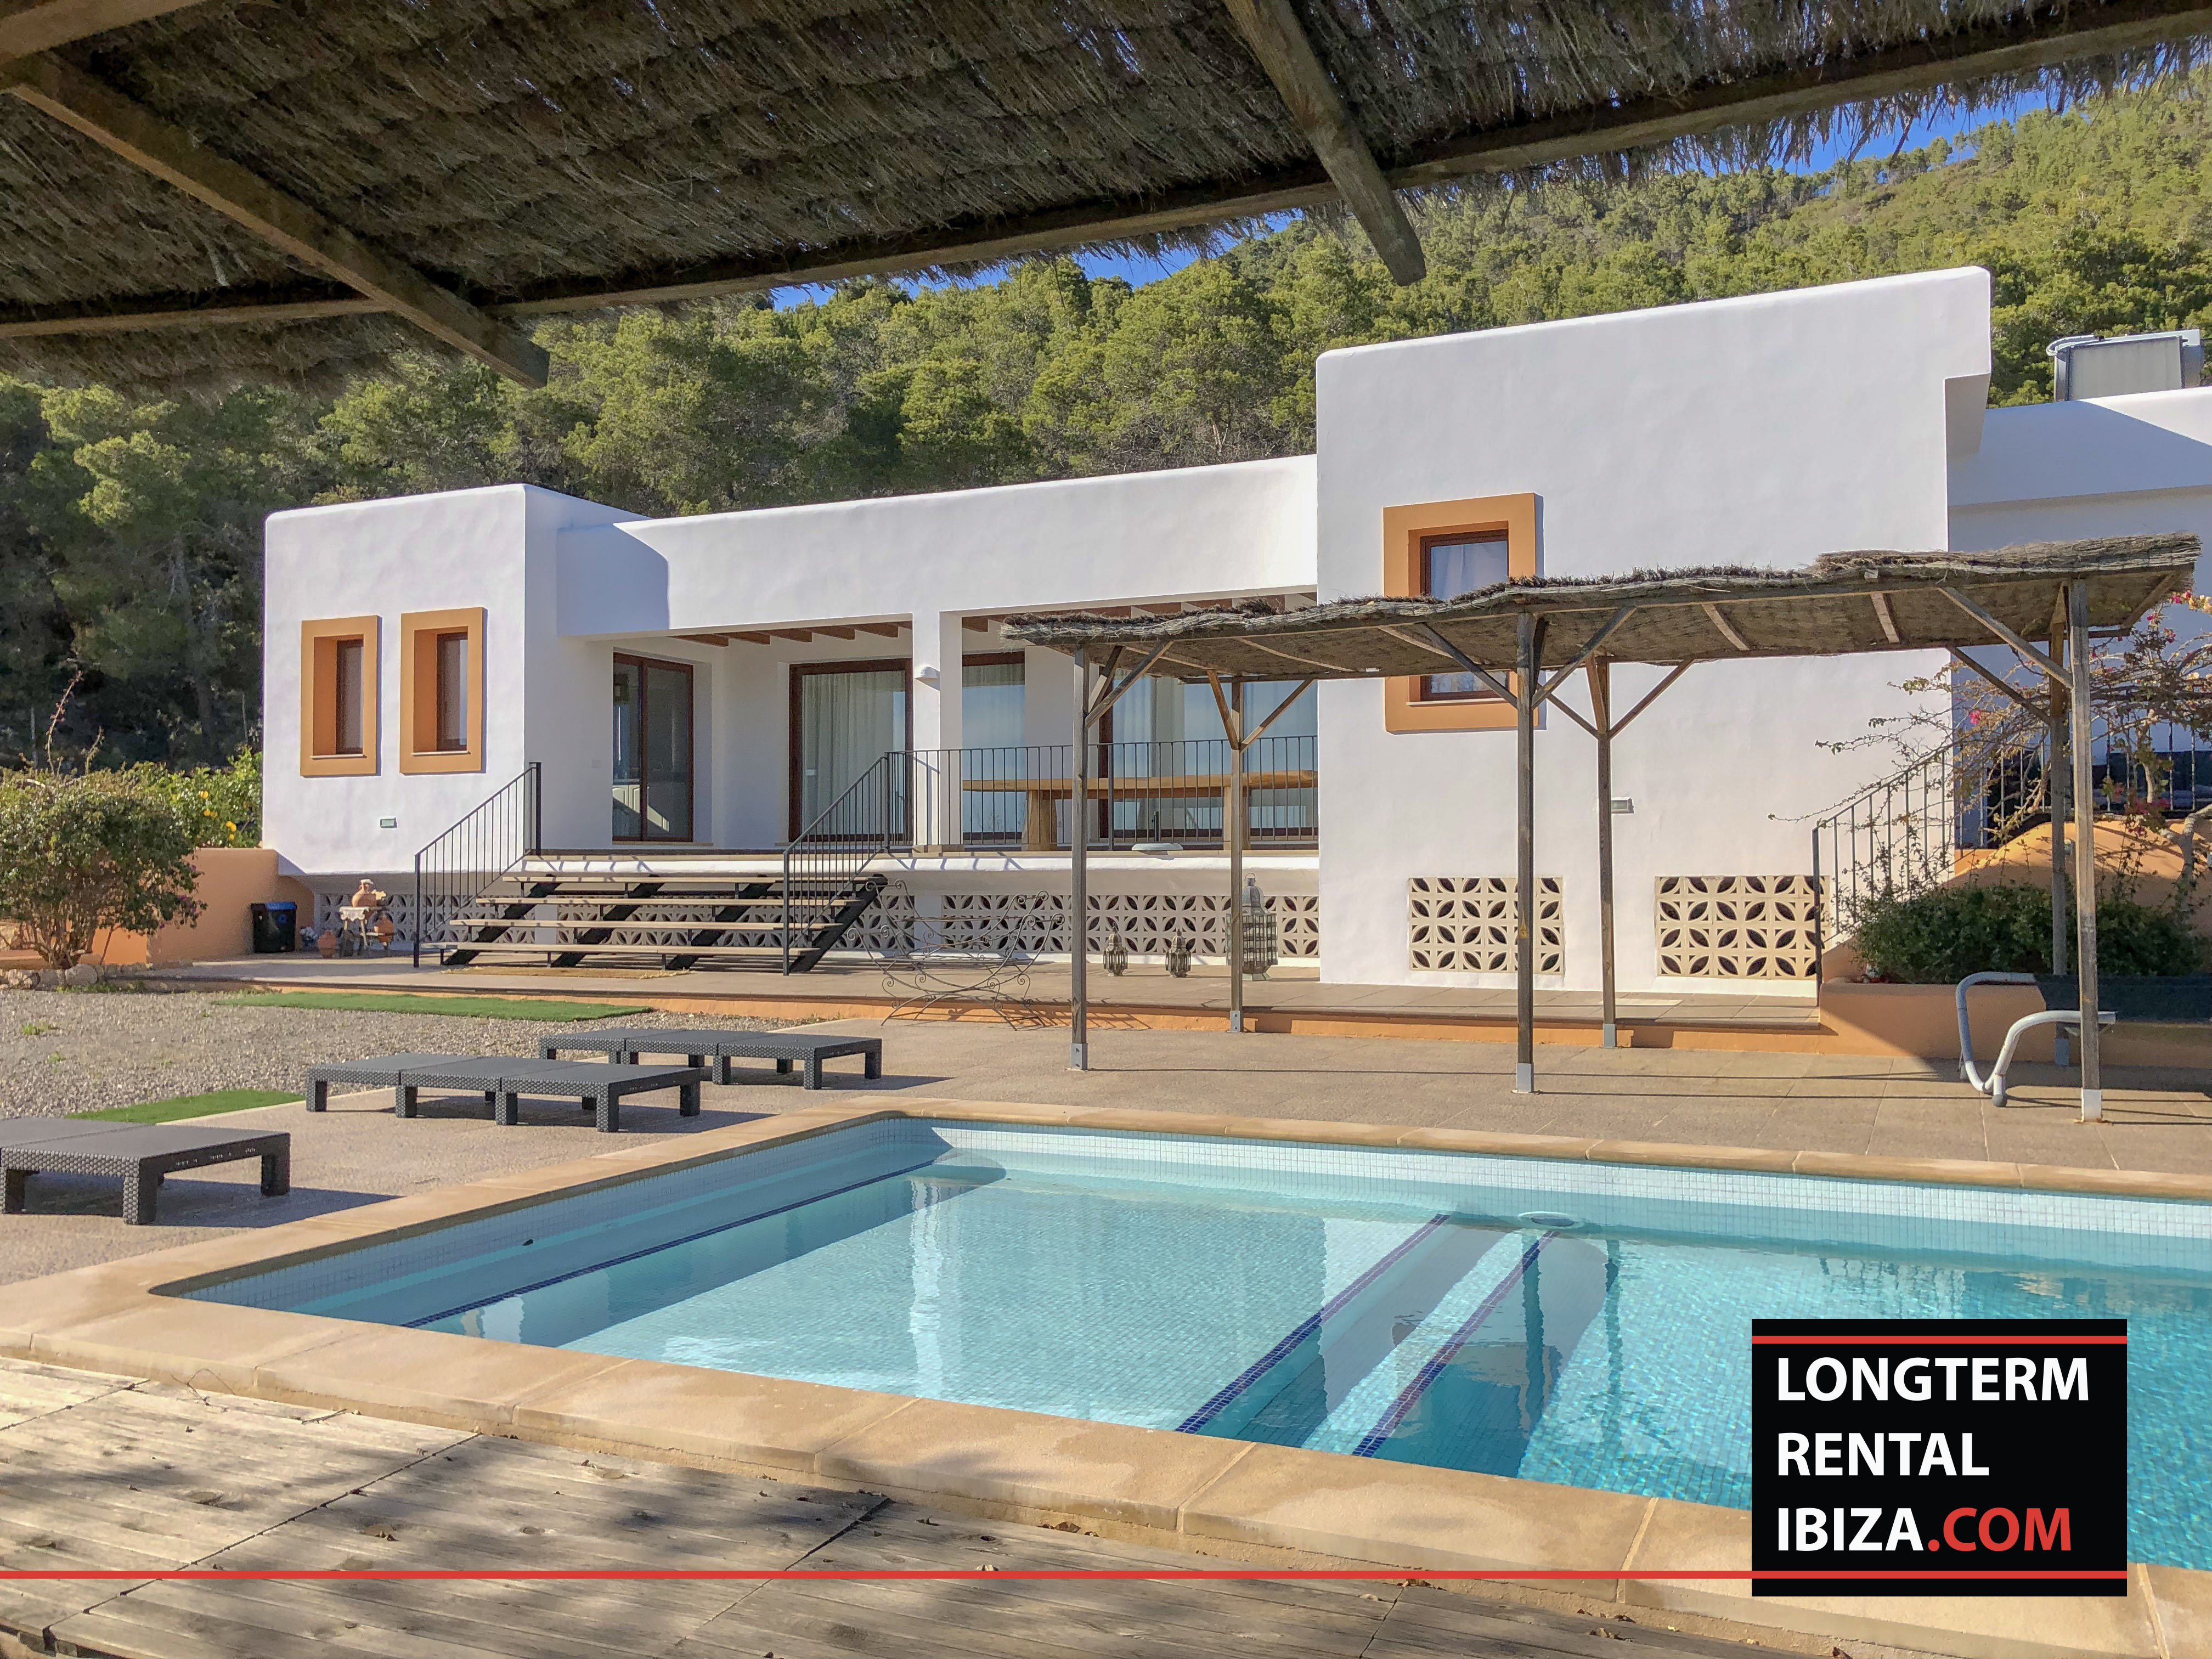 Long term rental ibiza Villa Dos Valles